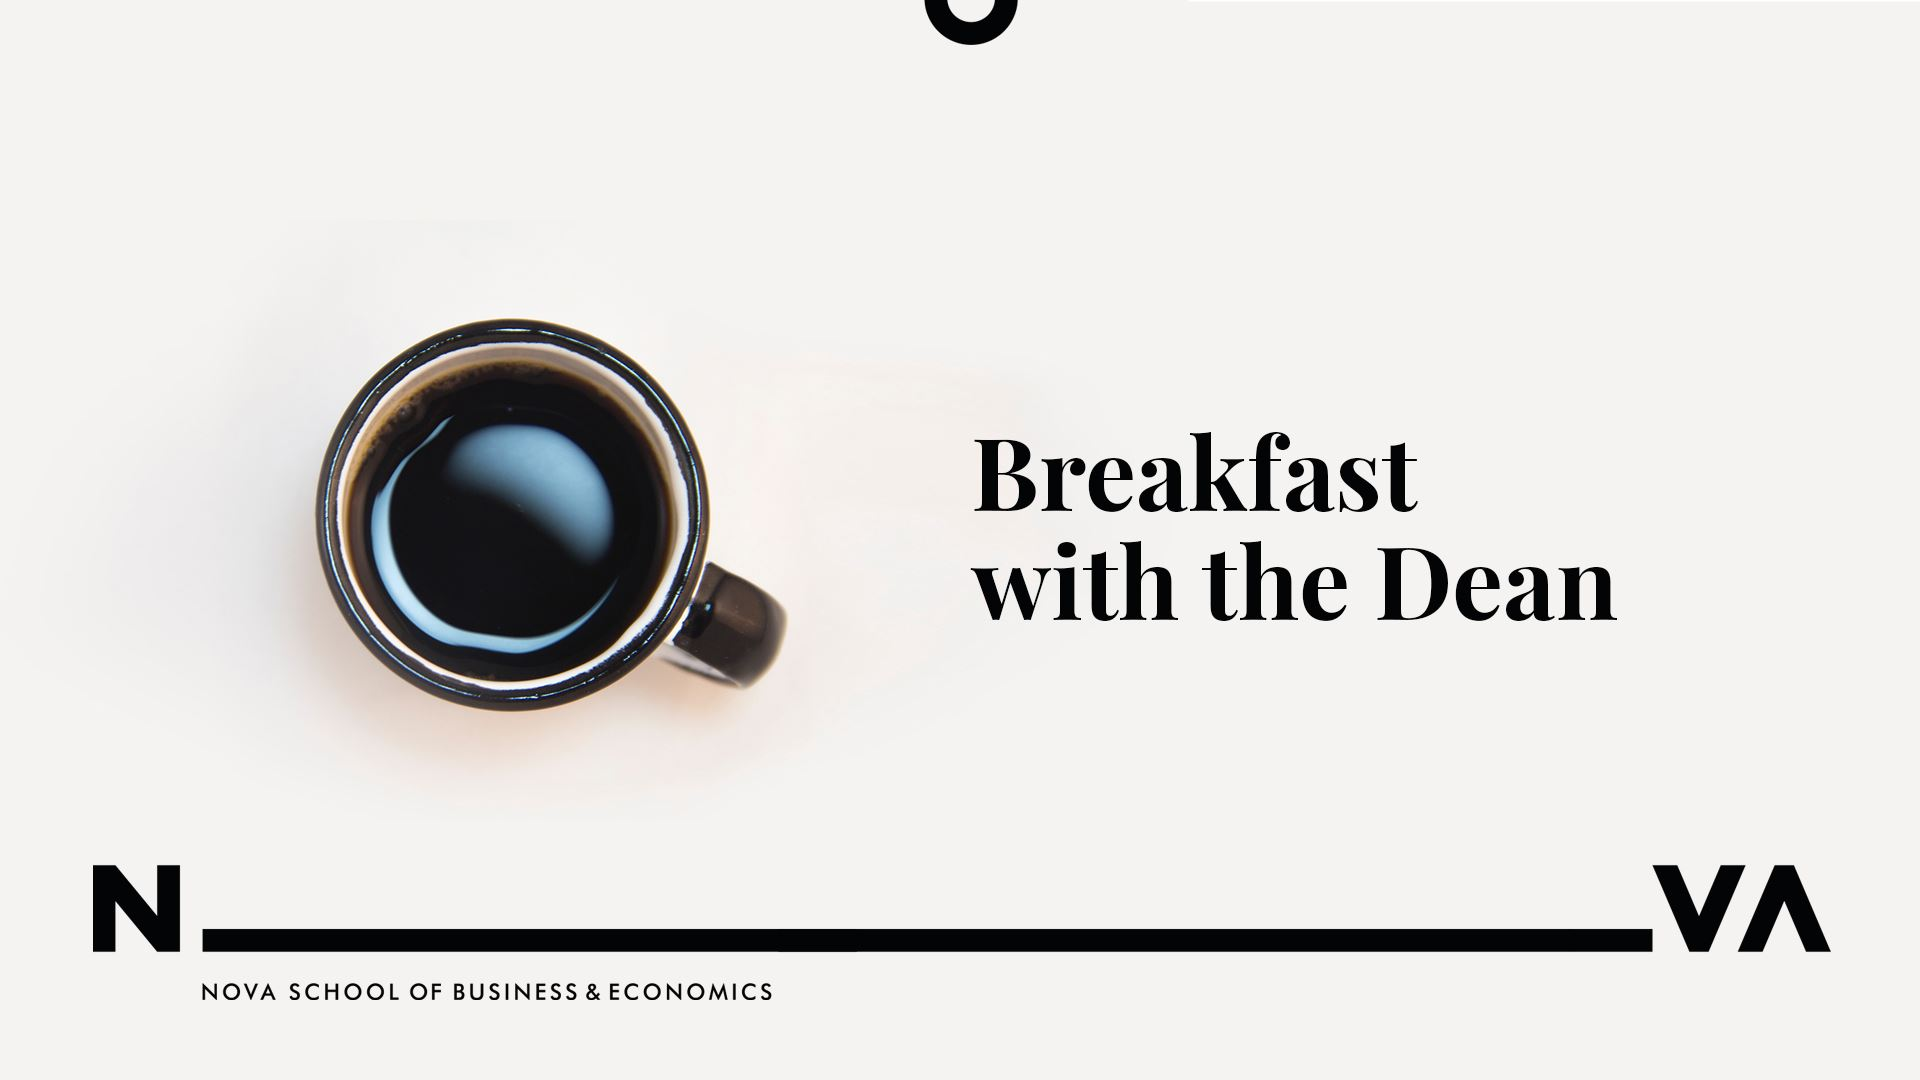 Breakfast with the Dean